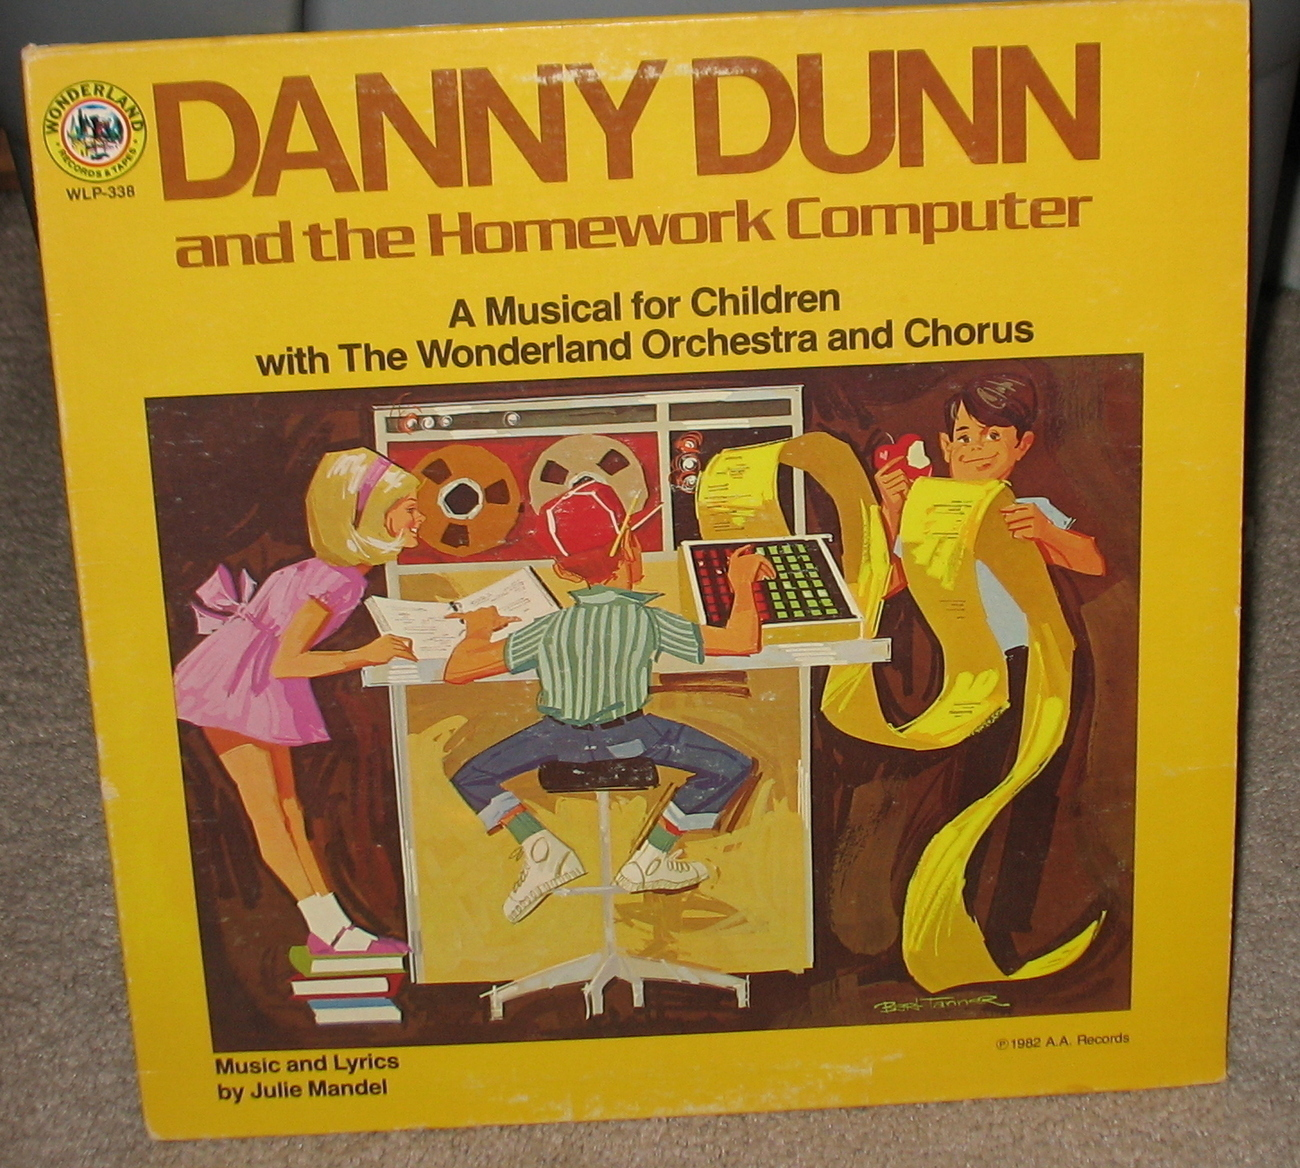 Danny Dunn and the Homework Computer LP - WLP 338 -1982